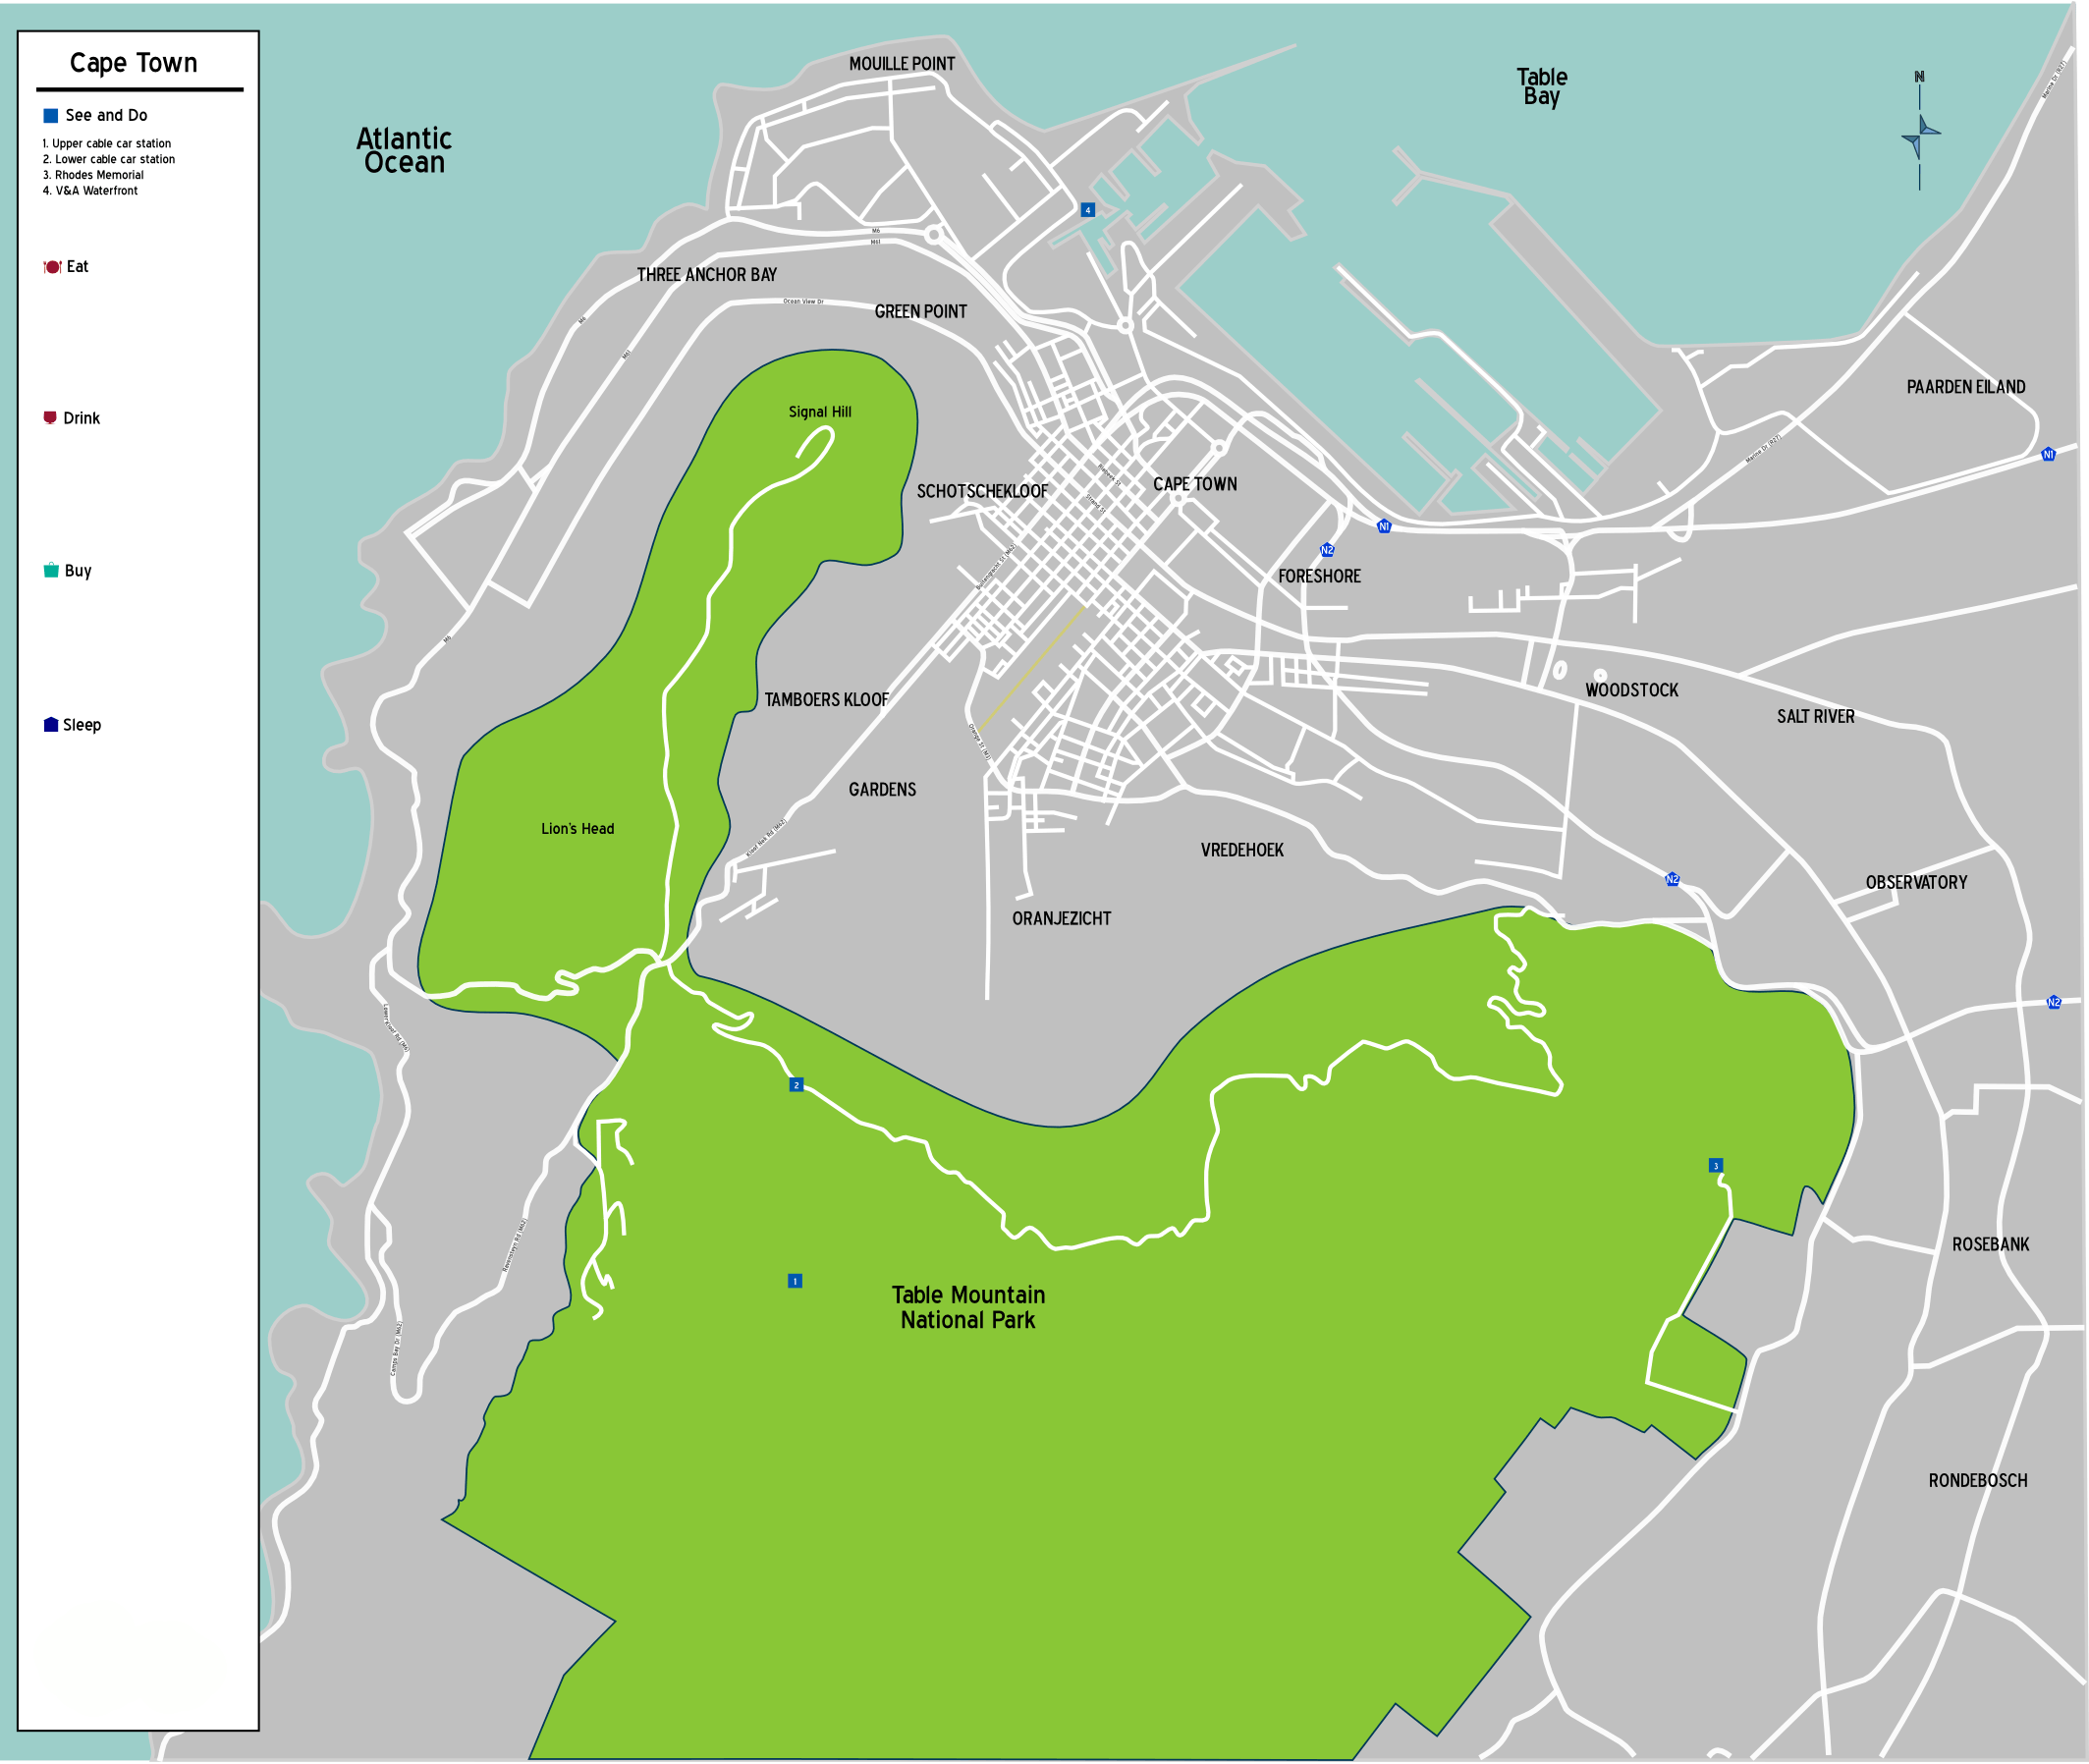 South Africa Cape Town Map